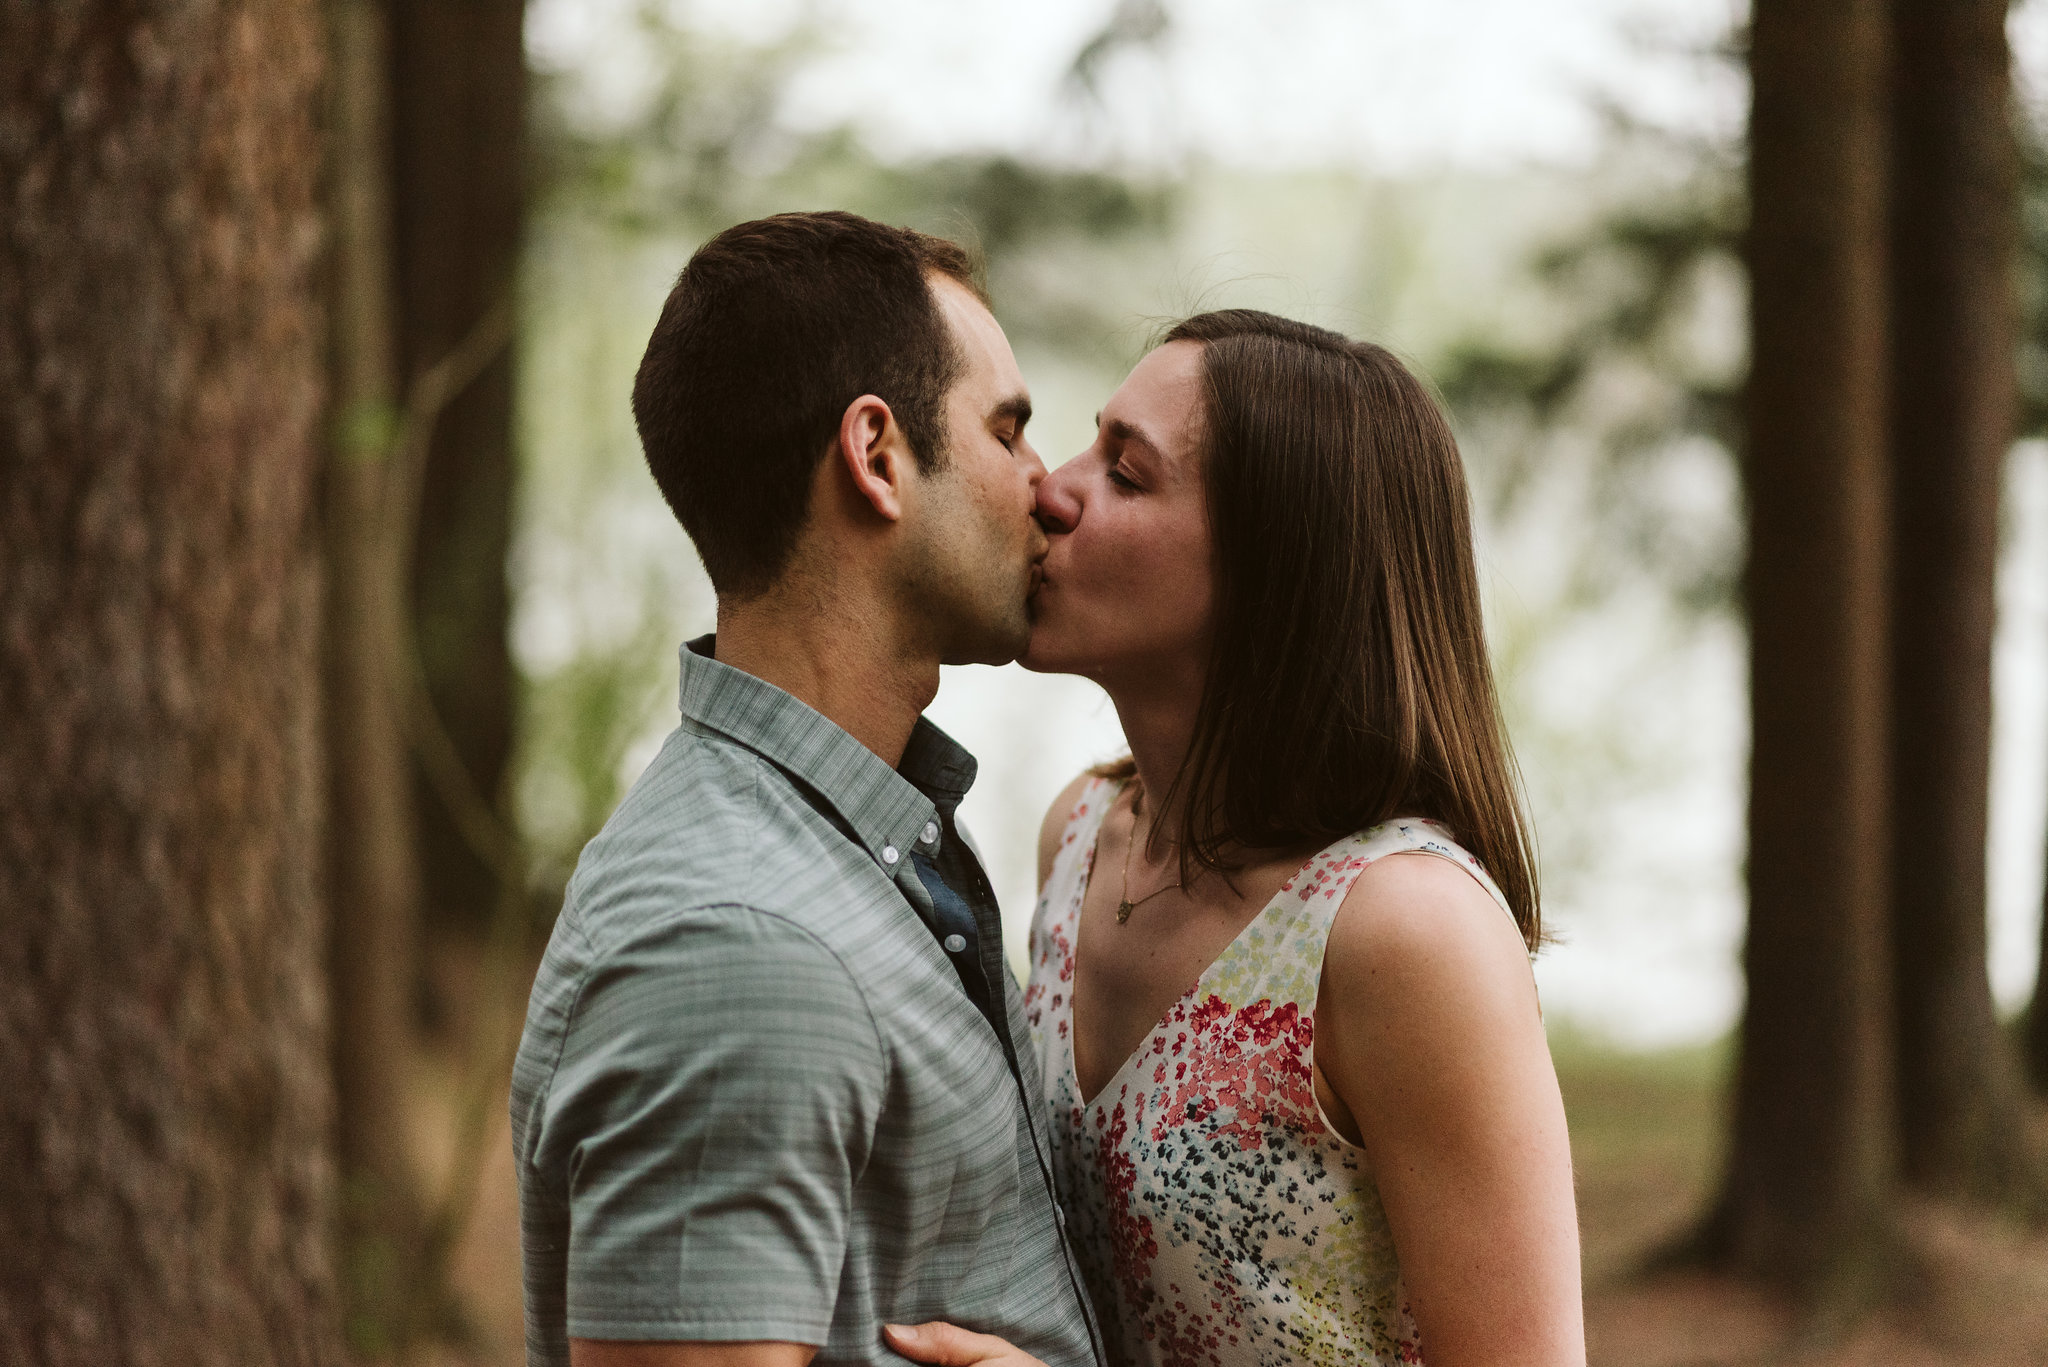 kissing couple crying and romantic